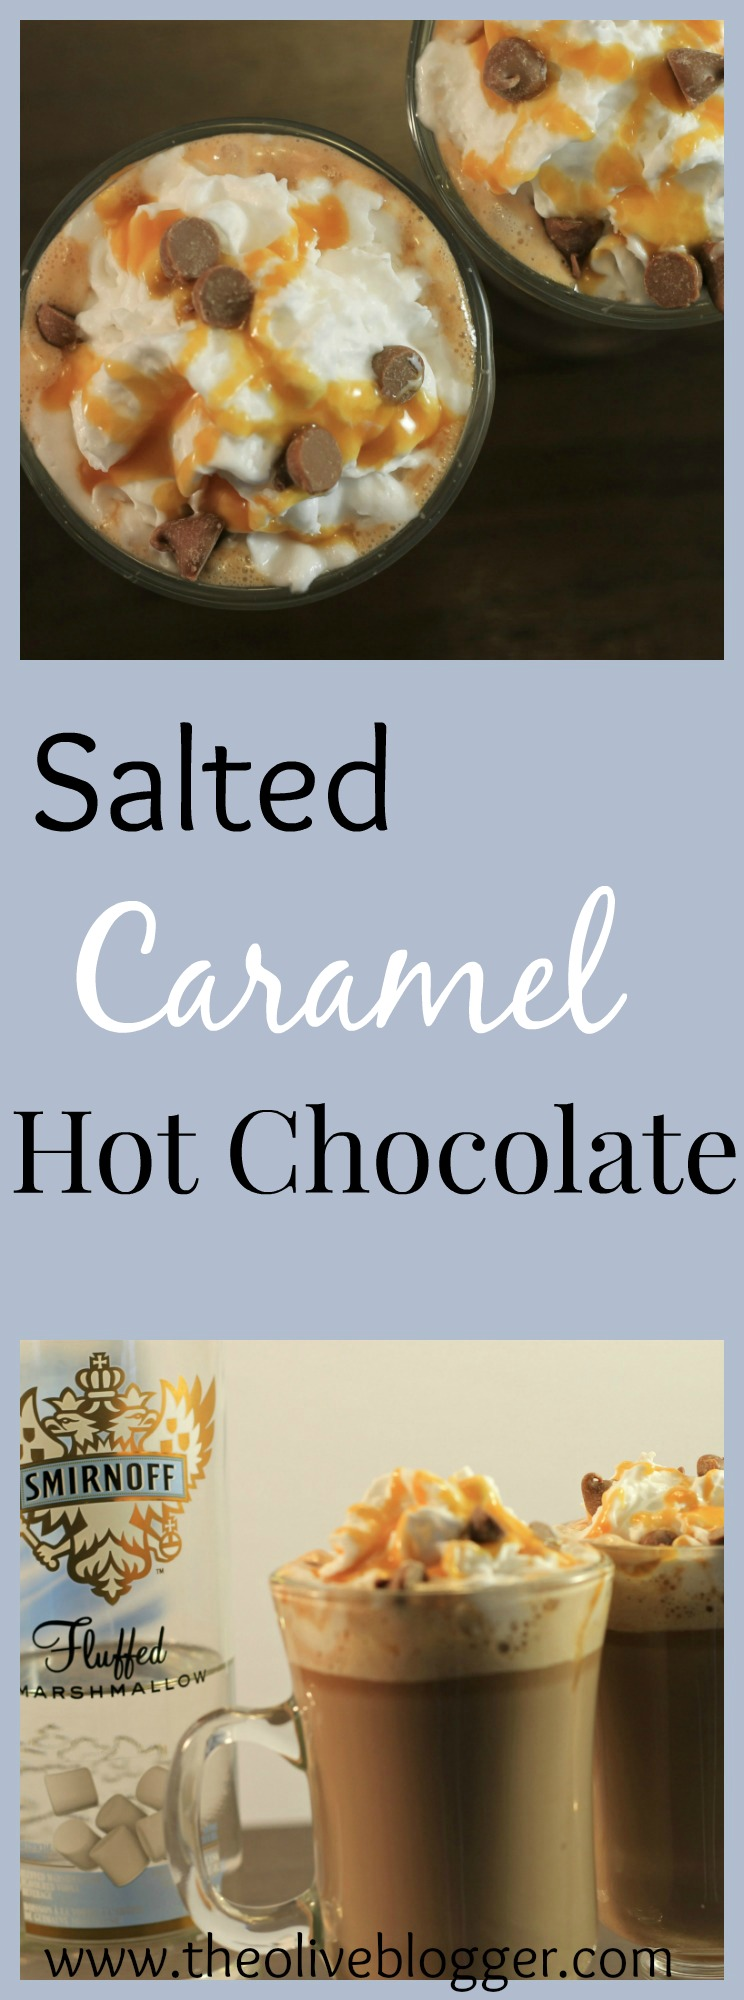 Salted Caramel Hot Chocolate + Spiked Version! - The Olive Blogger